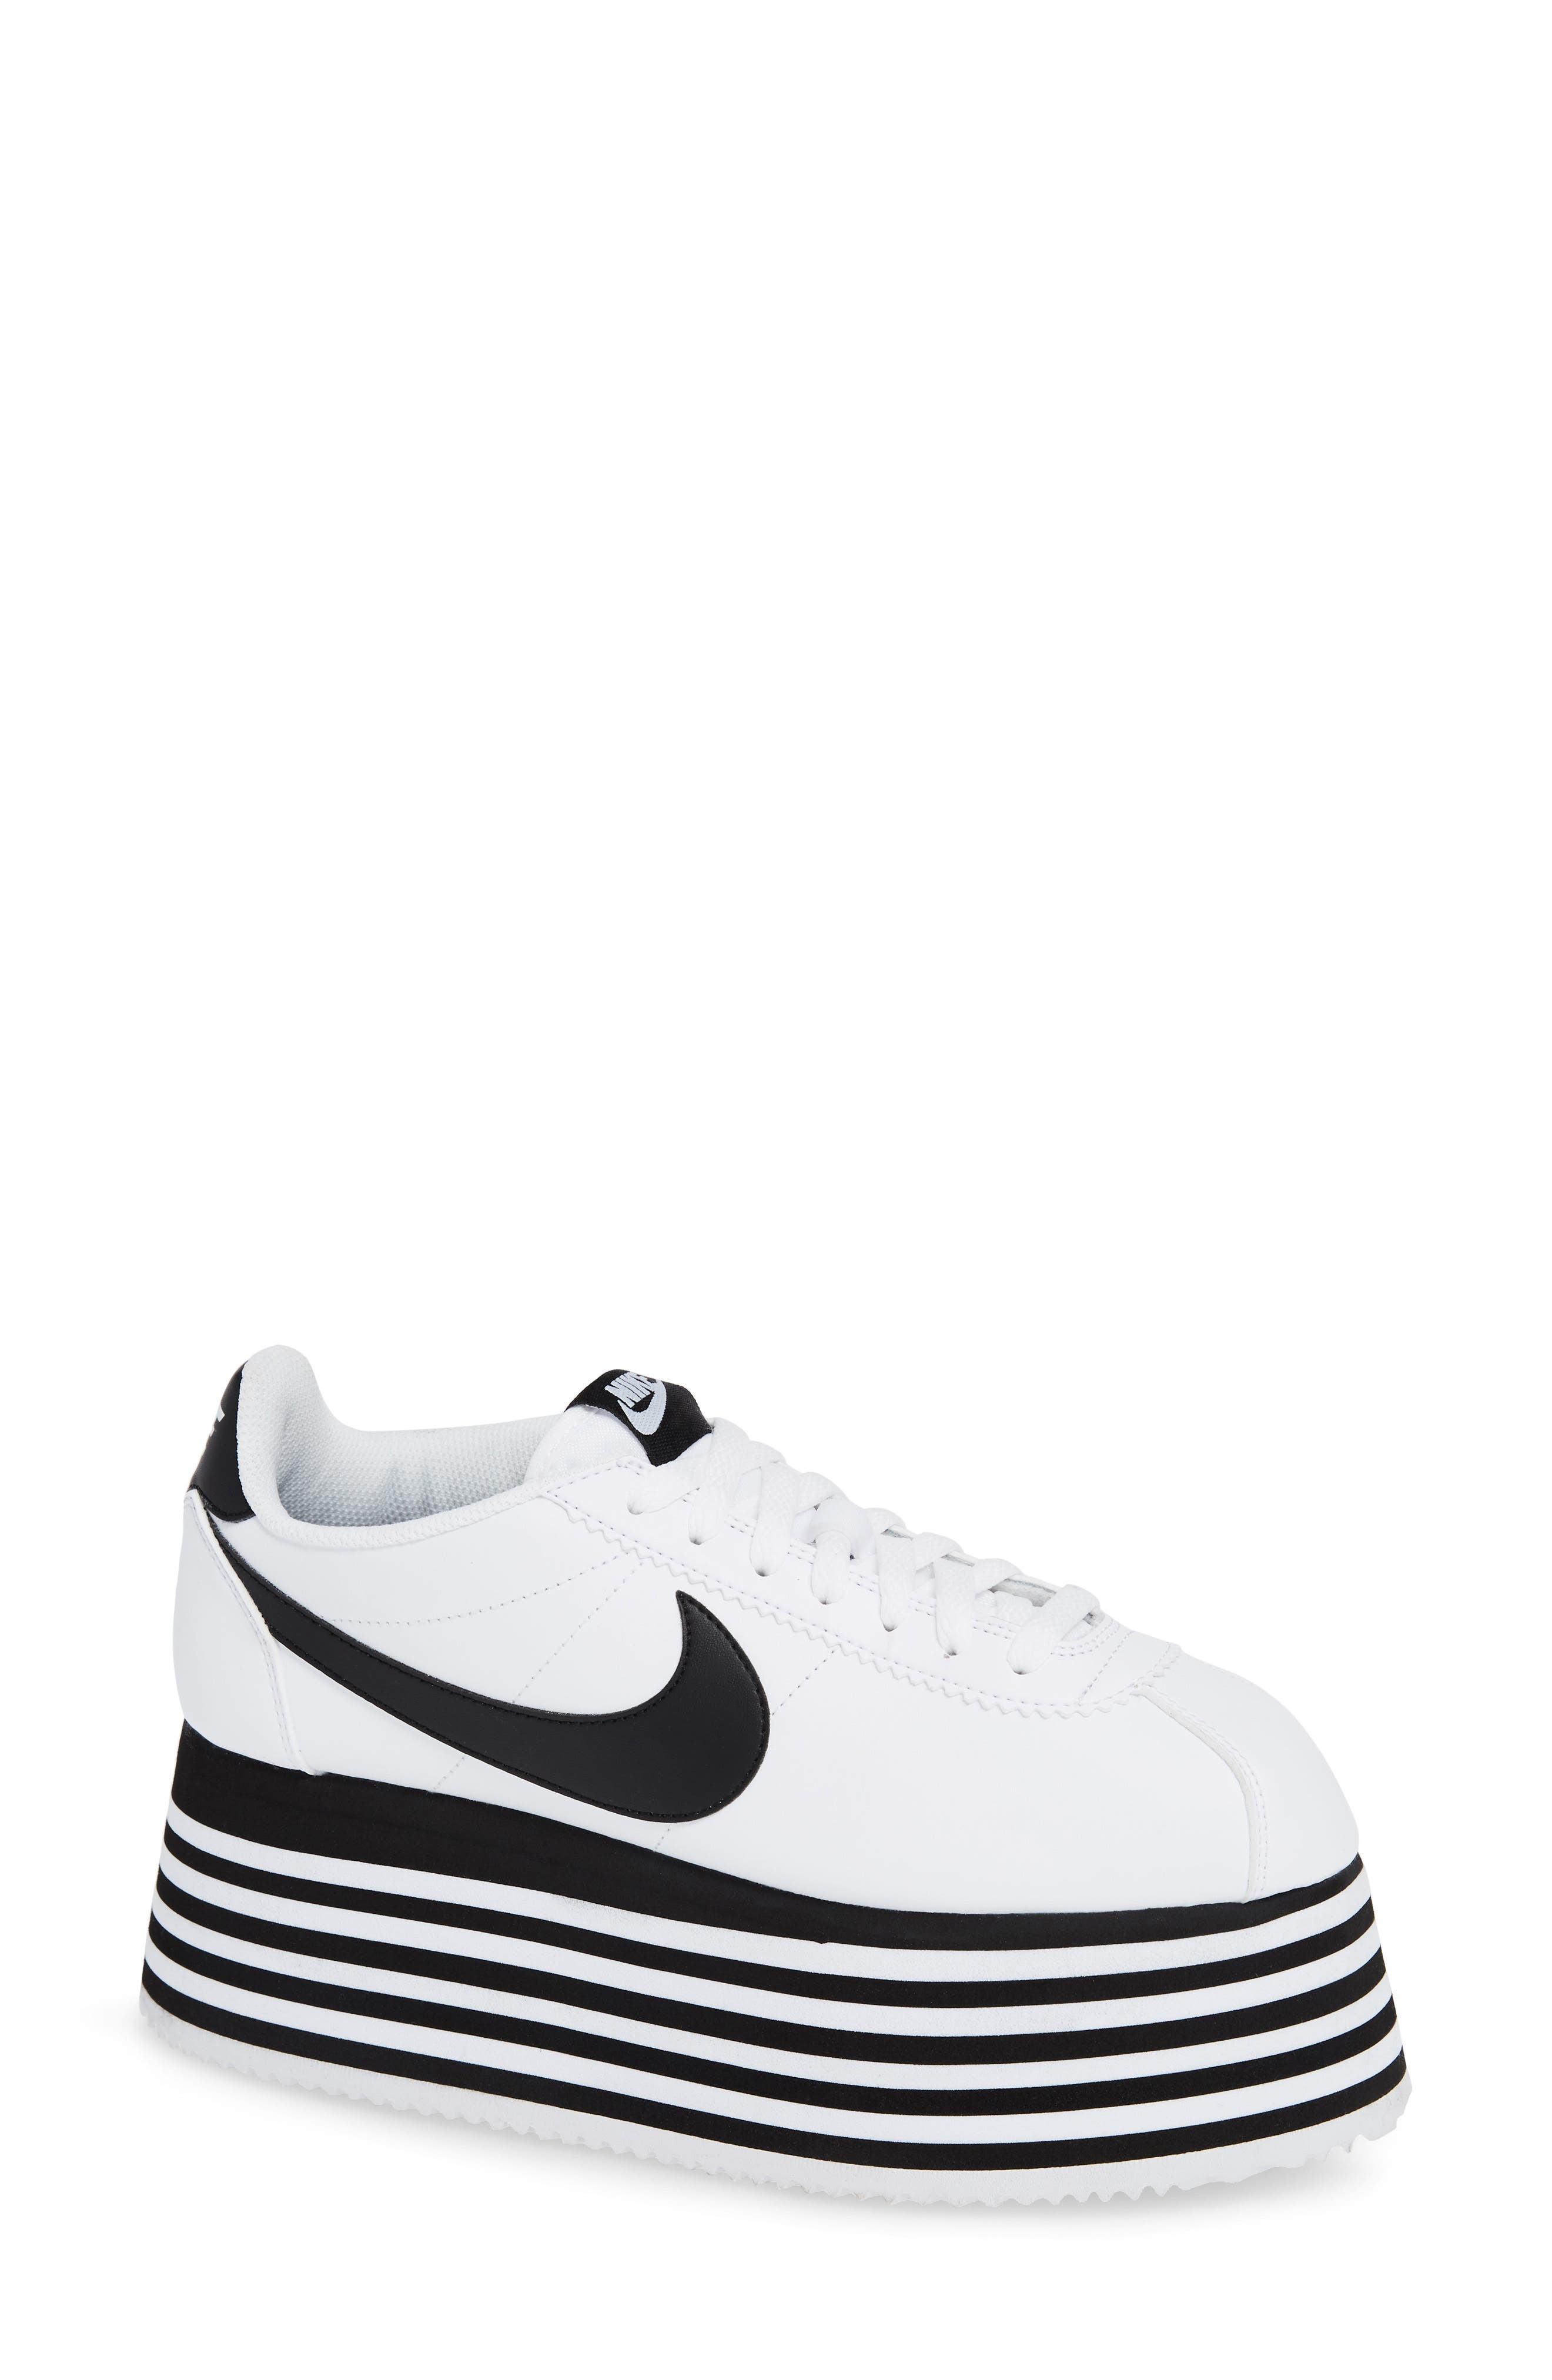 best service 8b4b0 d727a reduced nike cortez for sale xenia d24f5 cb472